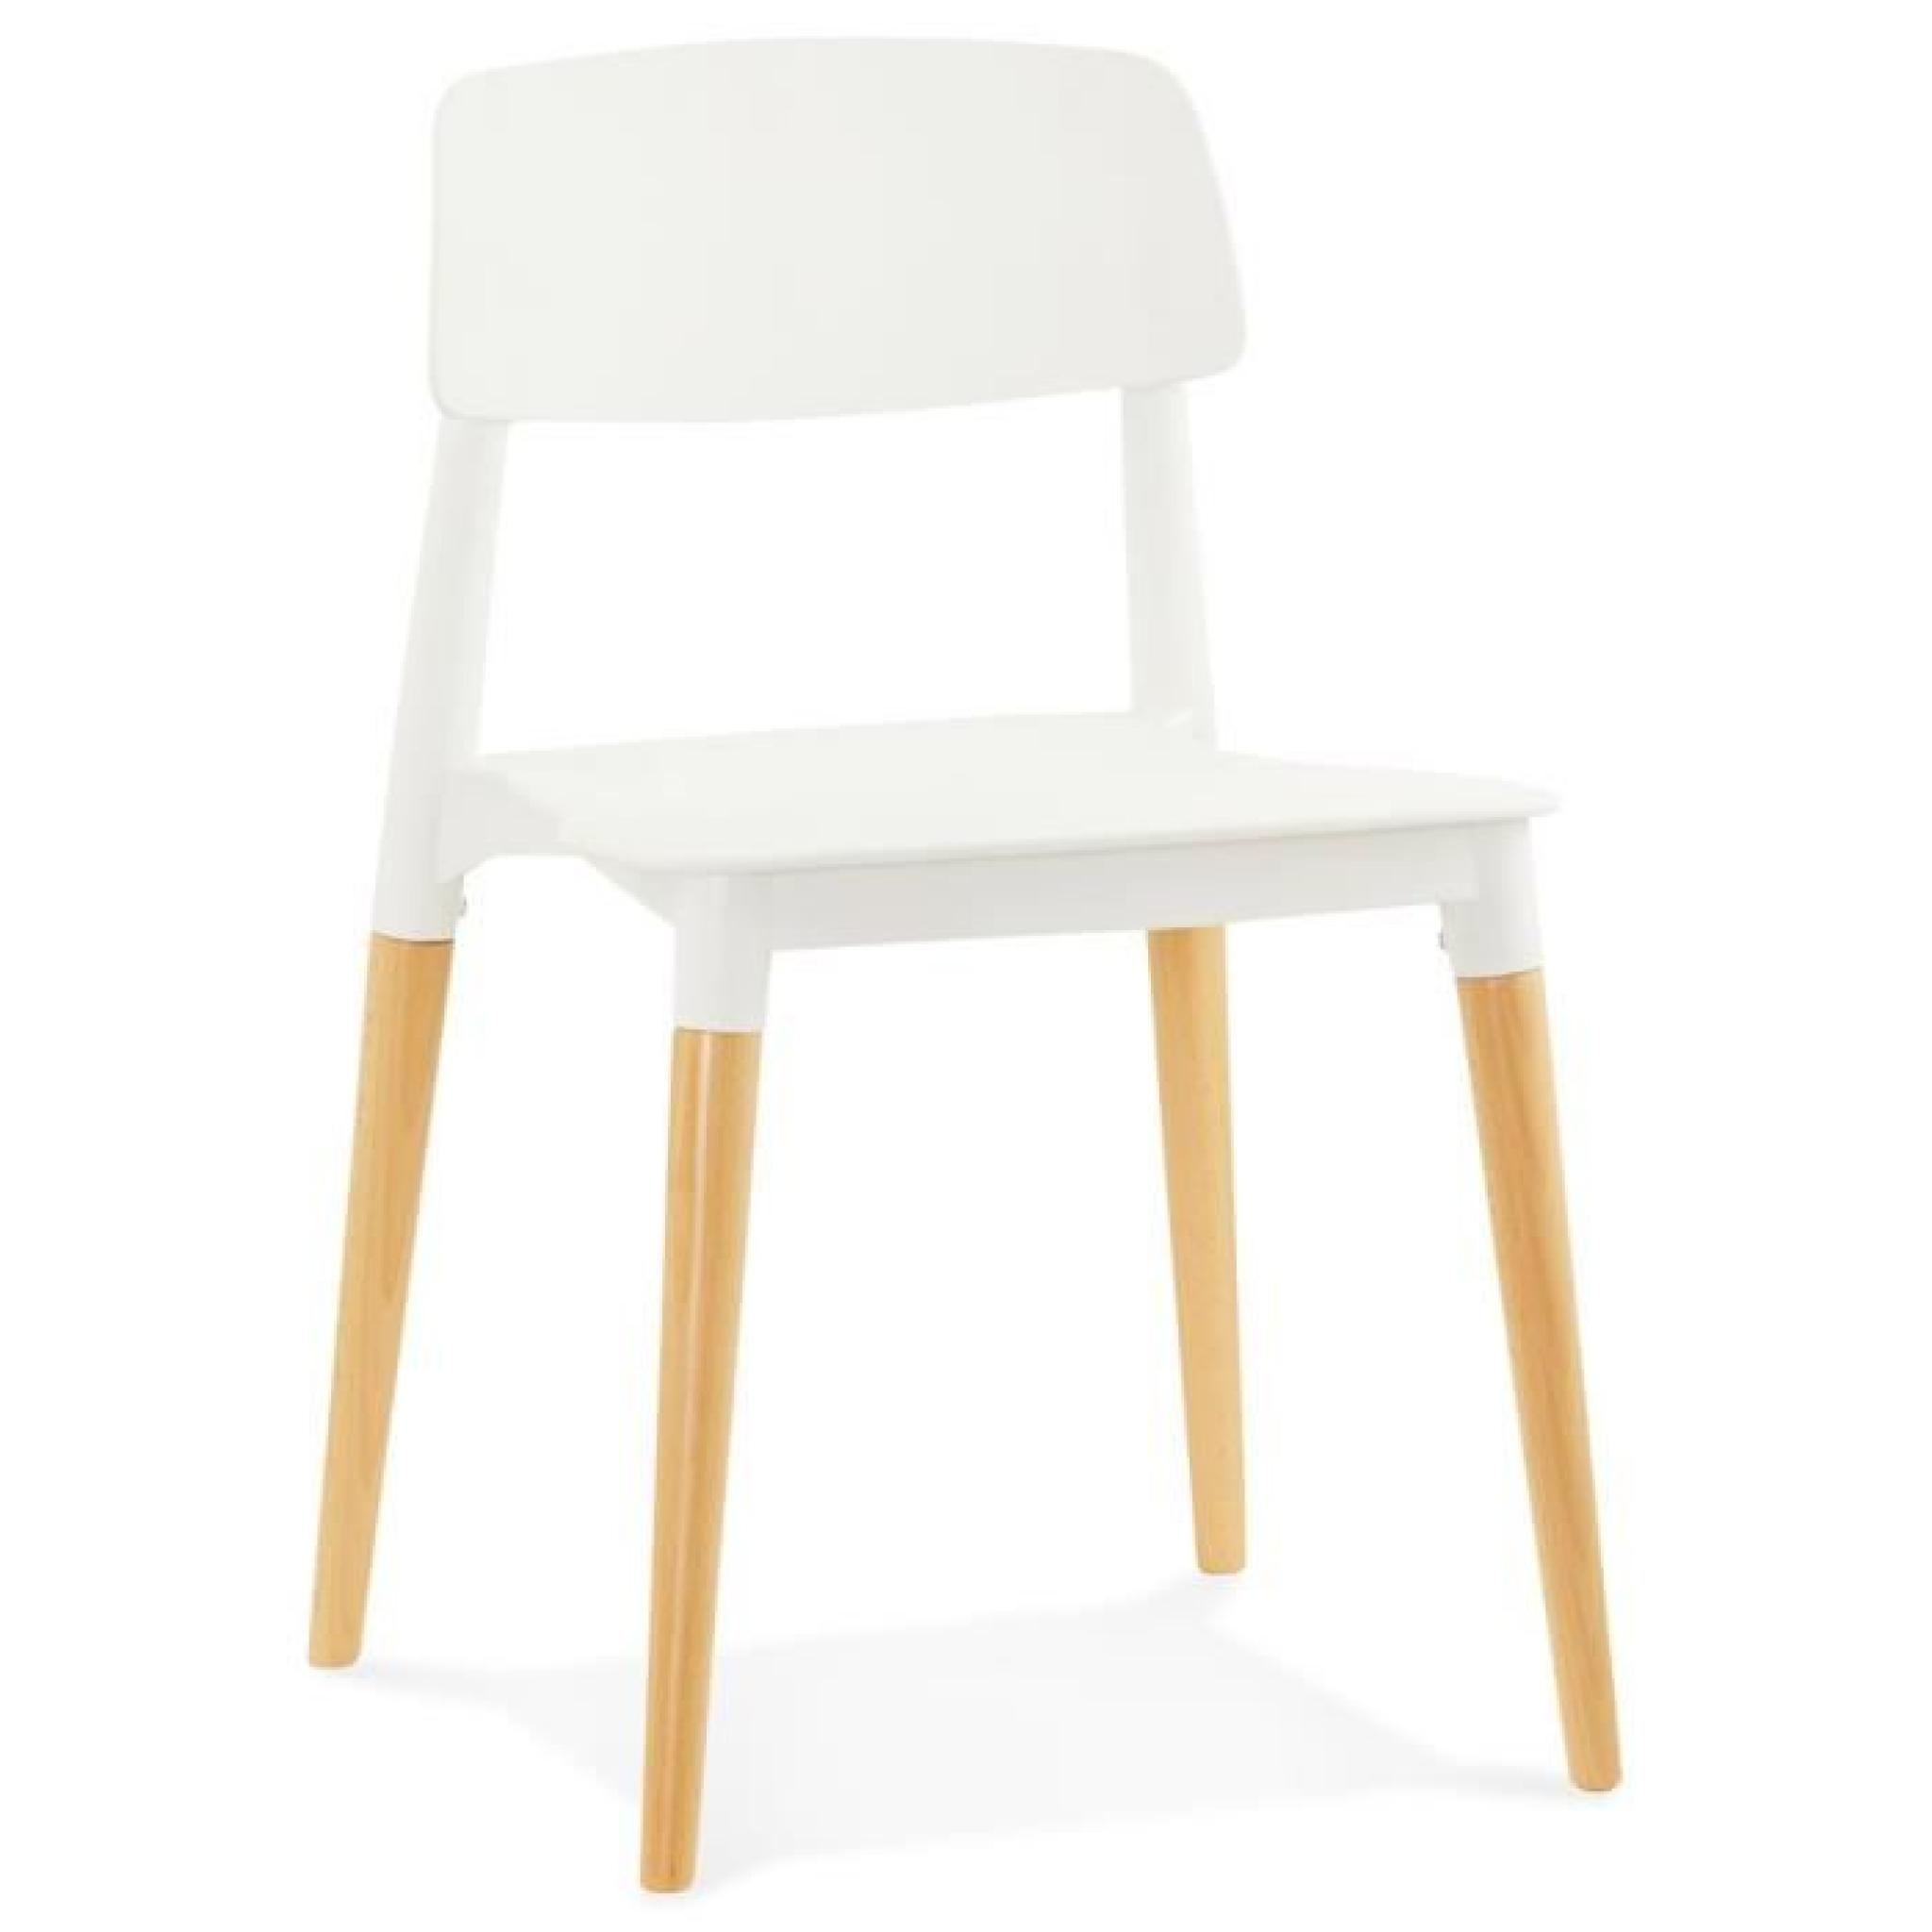 Chaise Moderne Pas Cher.Chaise Moderne Trendy Blanche Style Scandinave